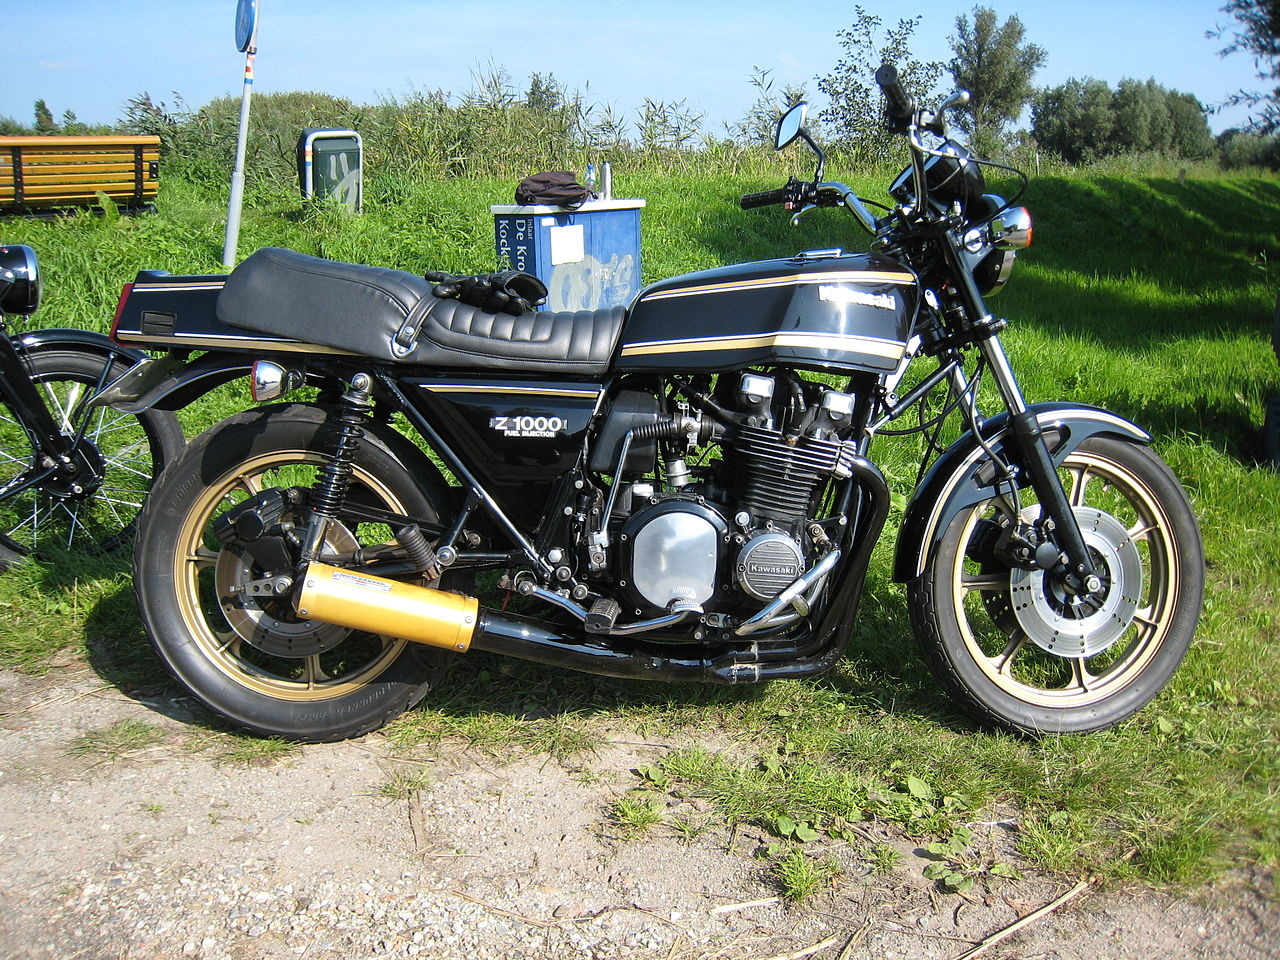 Kawasaki Engines For Sale South Africa